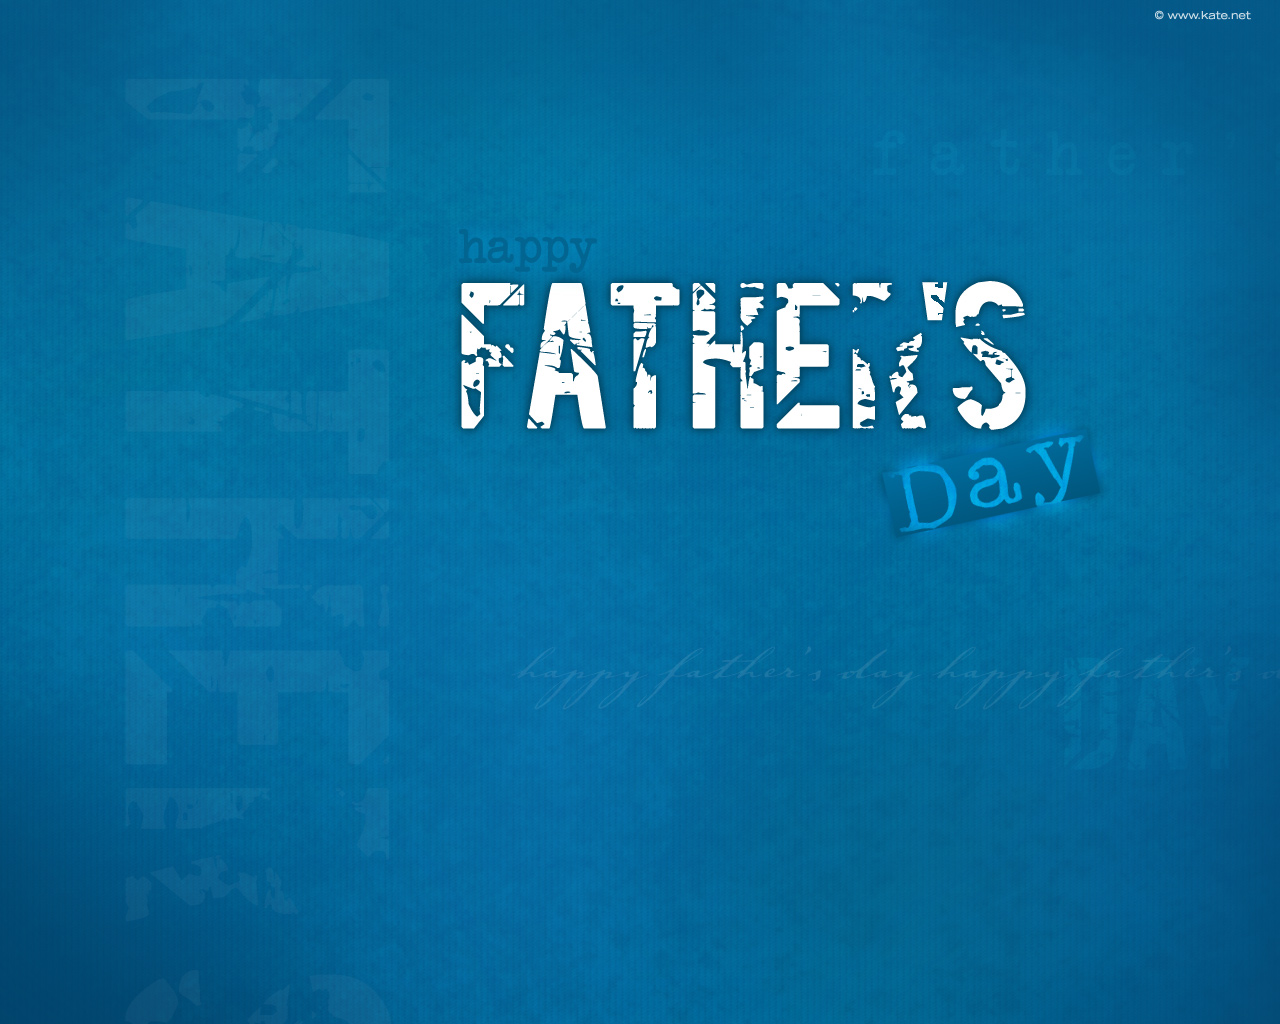 Fathers Day Fathers Day Wallpaper 35342179 Fanpop